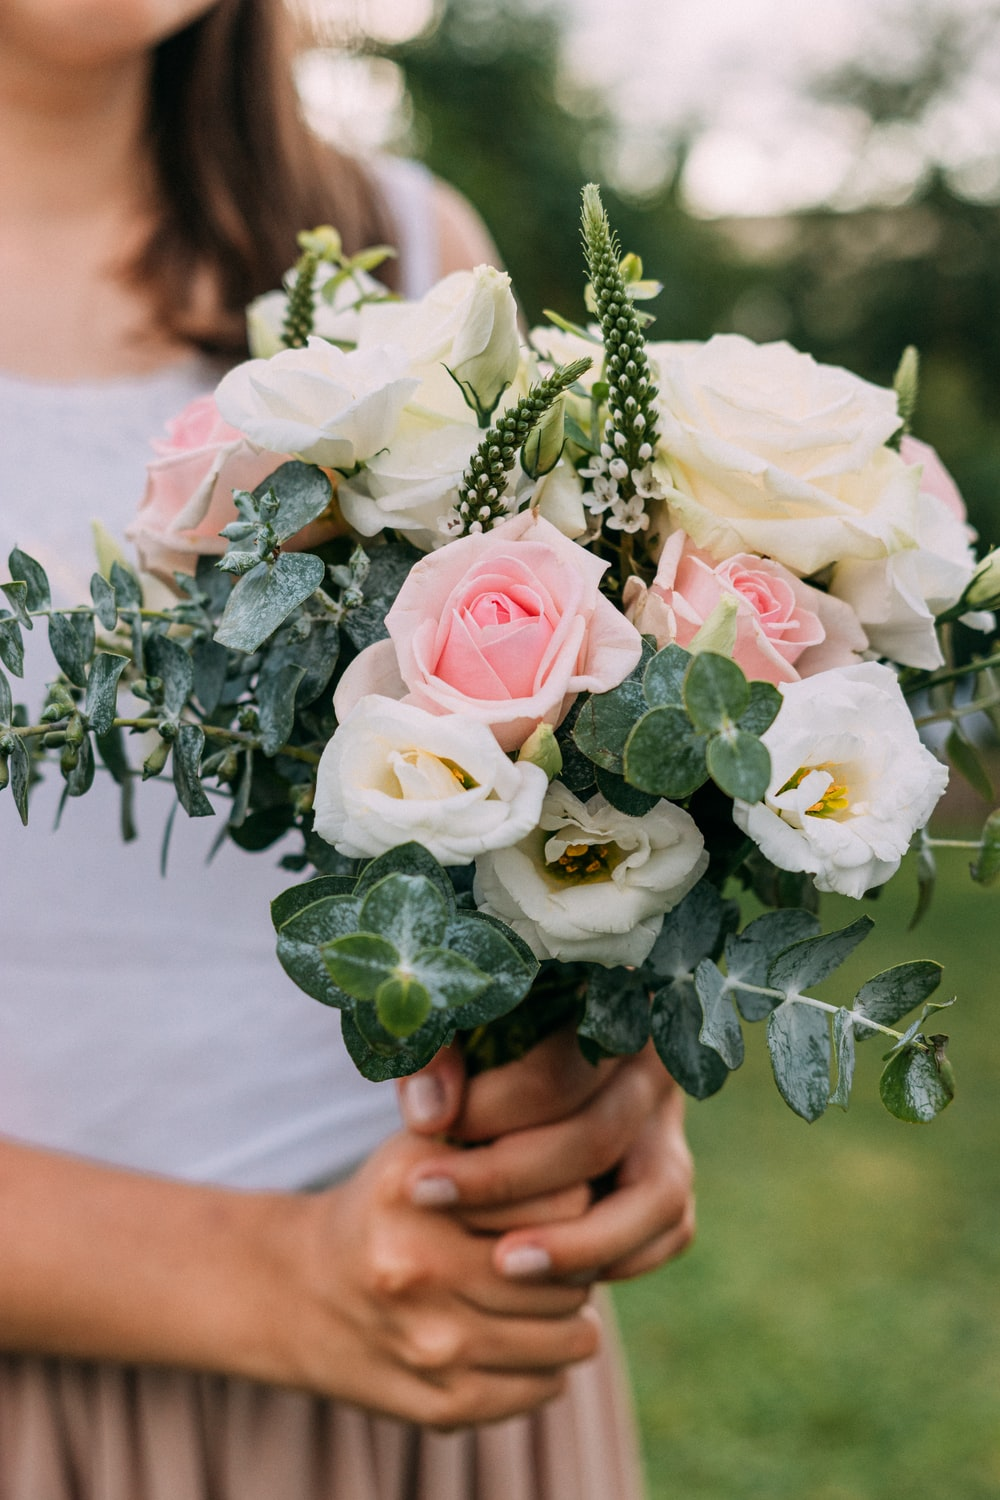 woman holding white and pink rose bouquet